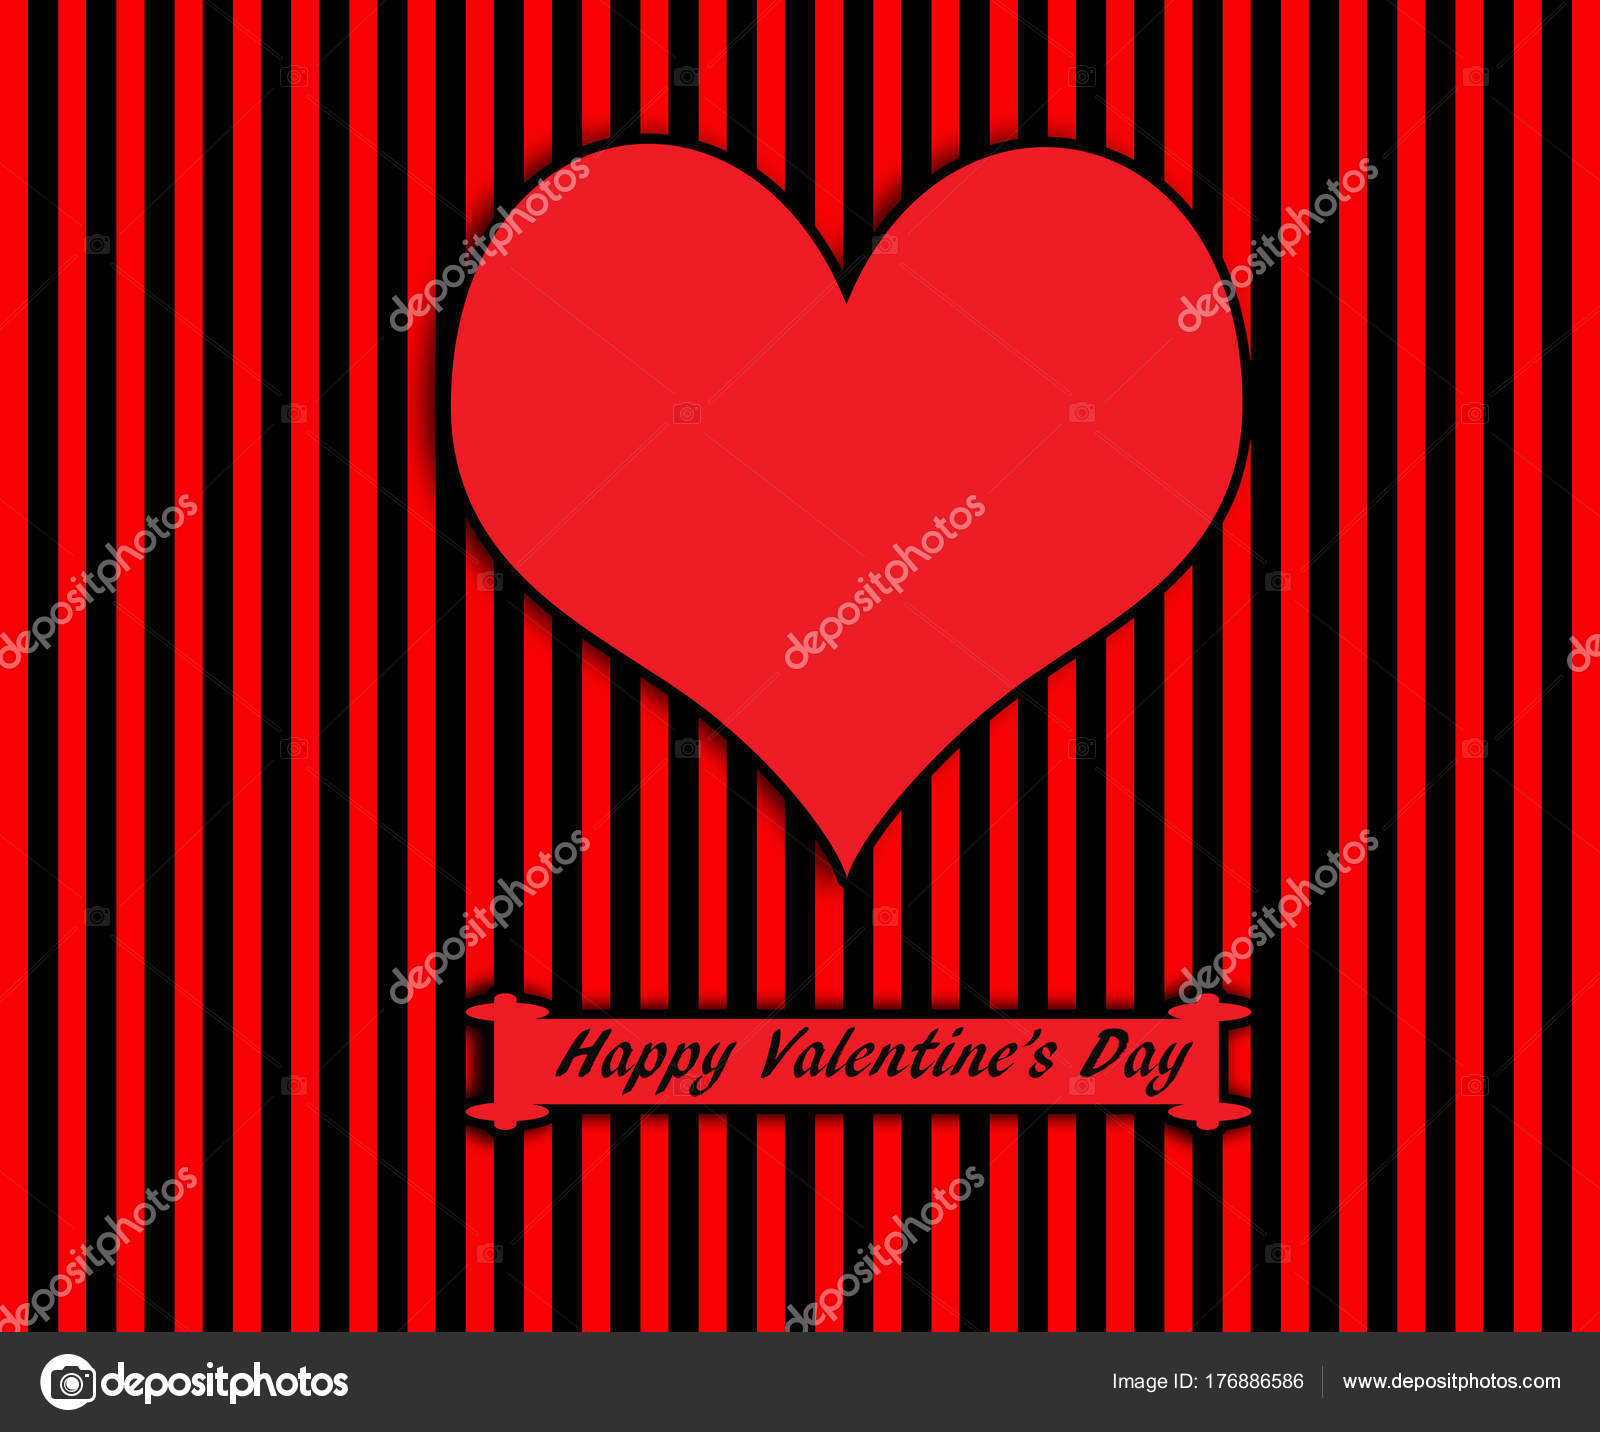 Day Lovers Greeting Card Heart Striped Background Stock Photo